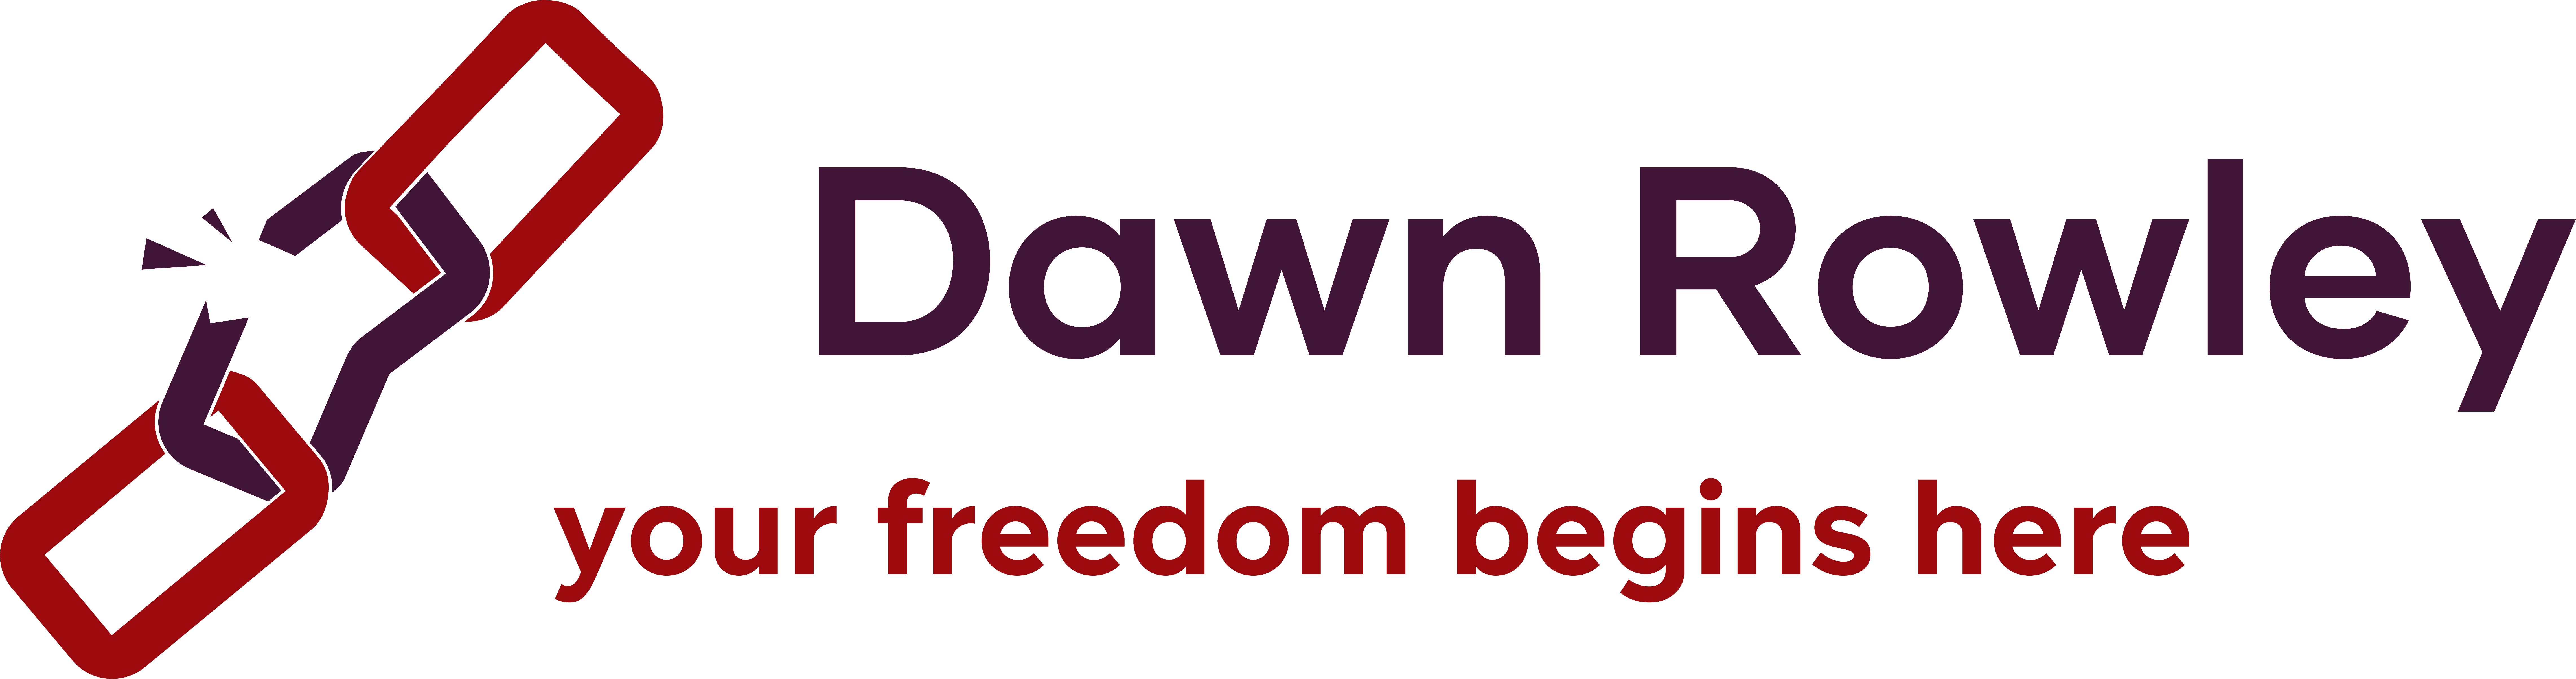 Dawn Rowley Logo